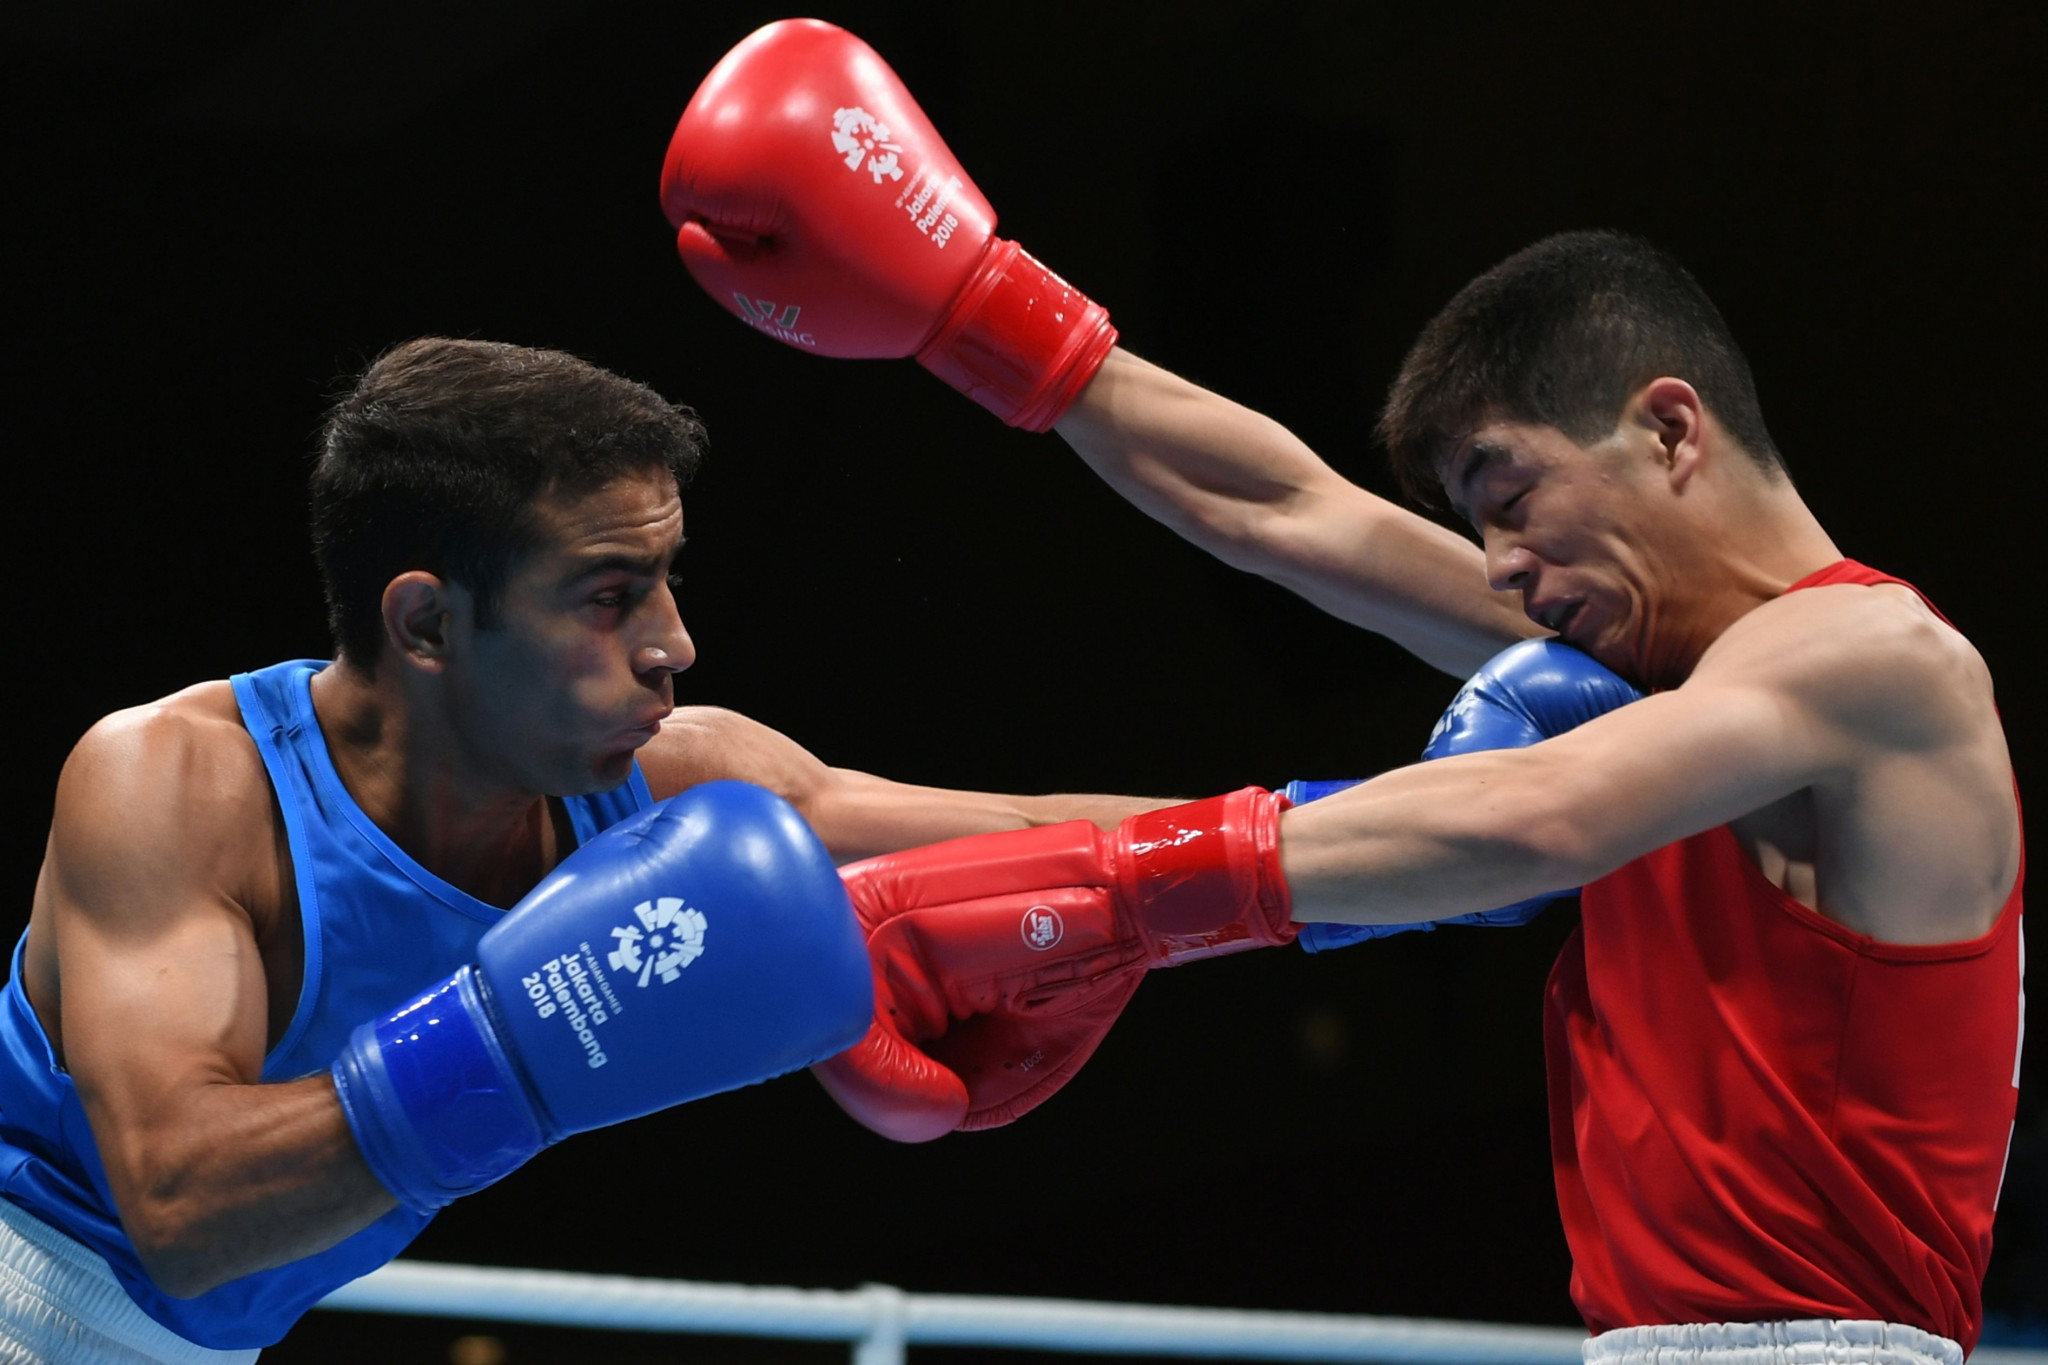 Asian Games champion Amit Panghal of India earned another victory over Uzbekistan's Olympic gold medallist Hasanboy Dusmatov ©Getty Images